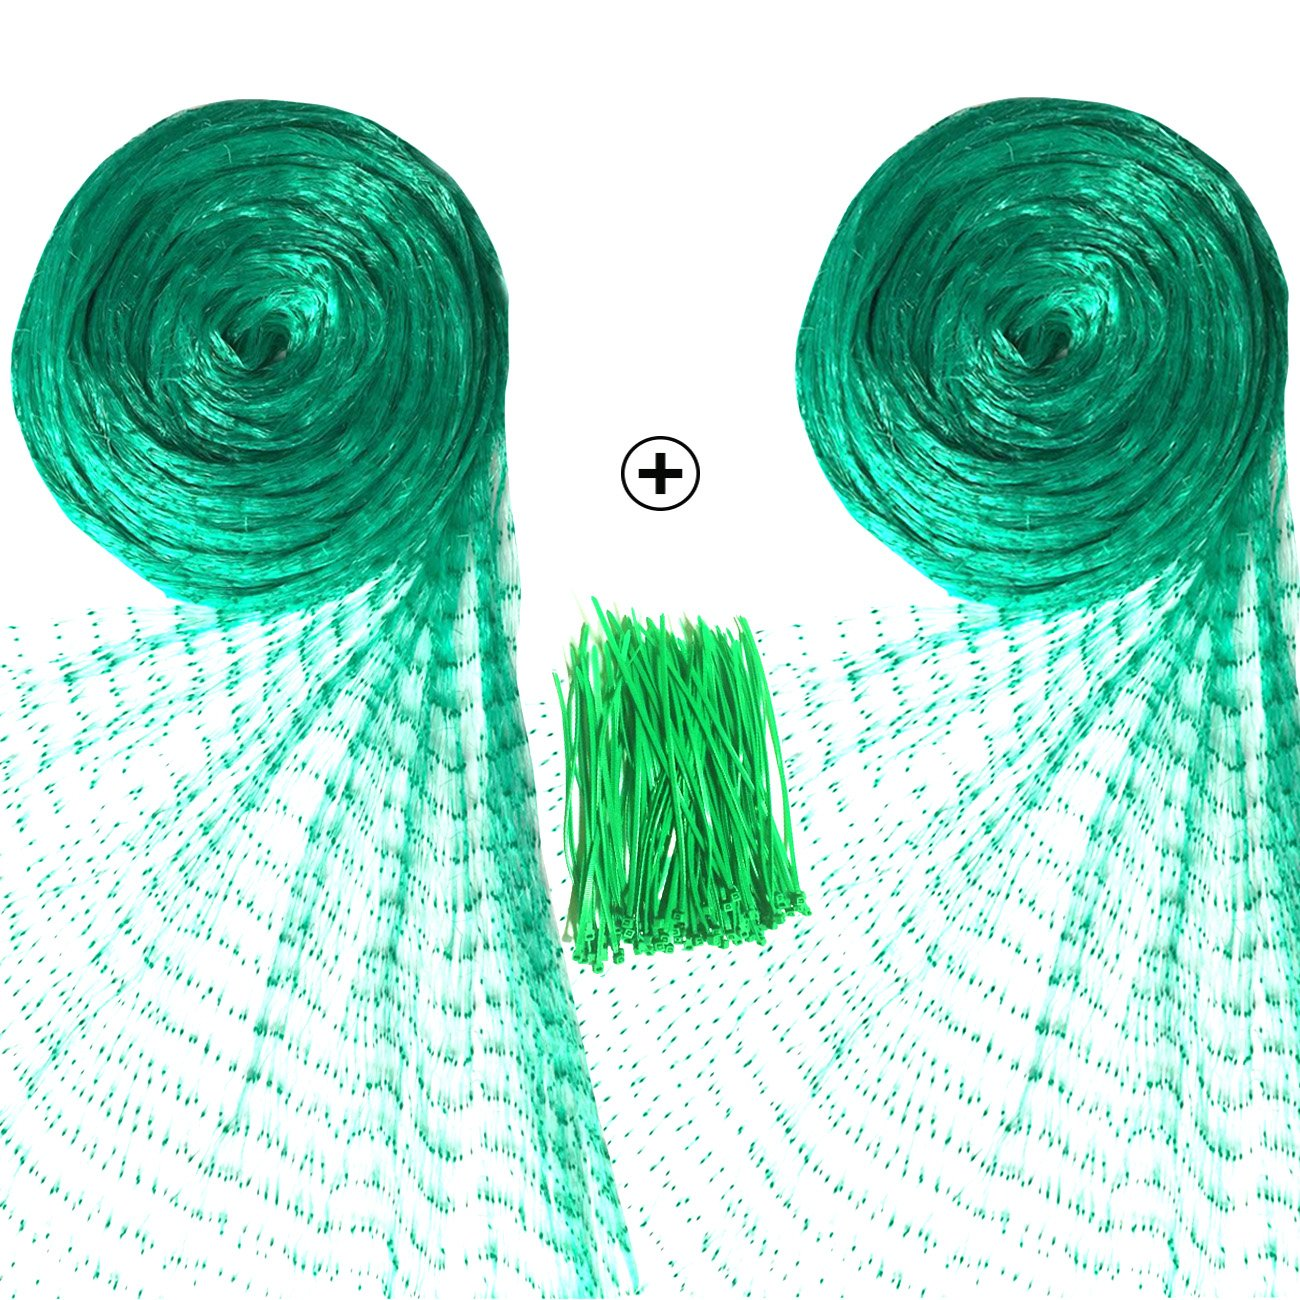 Senneny 2 Pack Bird Netting, 33Ft x 13Ft Anti-Bird Netting with 100 Pcs Nylon Cable Ties, Green Garden Netting for Protecting Plants and Fruit Trees from Rodents Birds and Deer